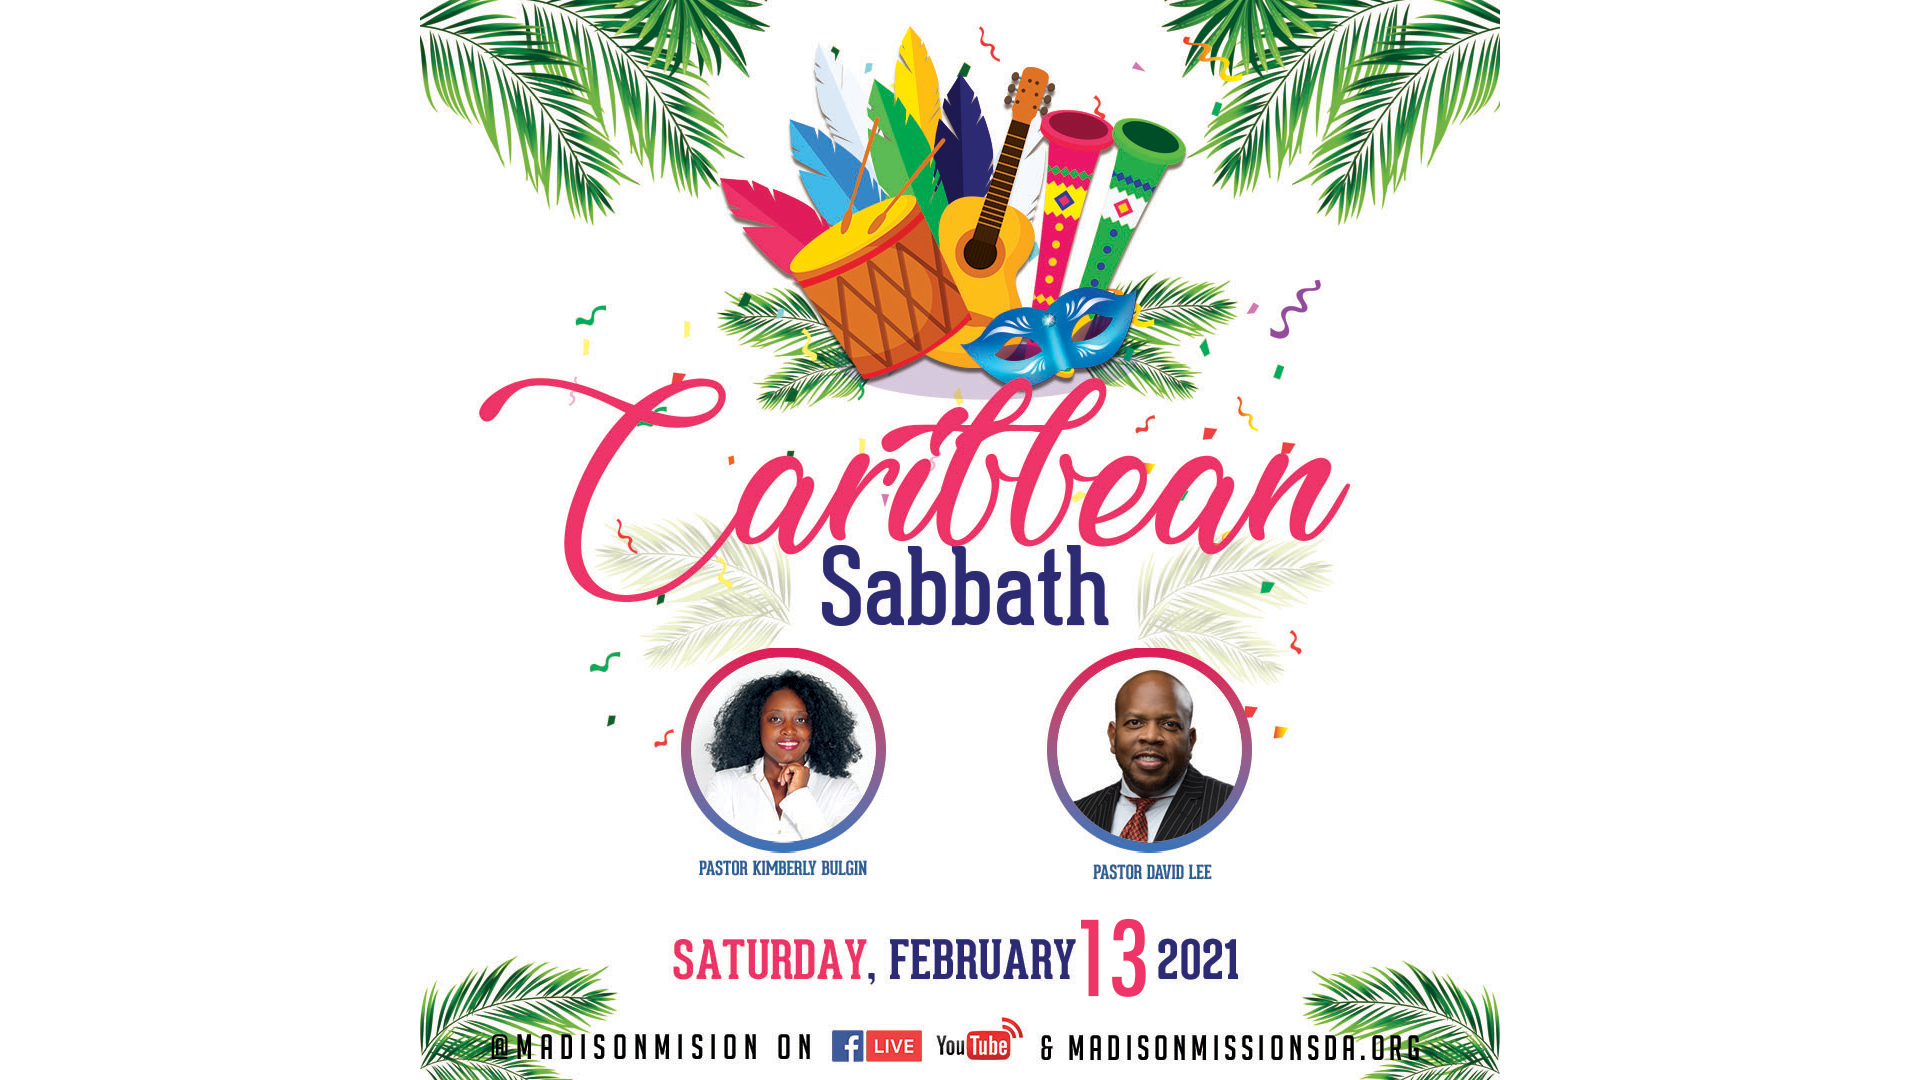 Caribbean Day 2021 Image